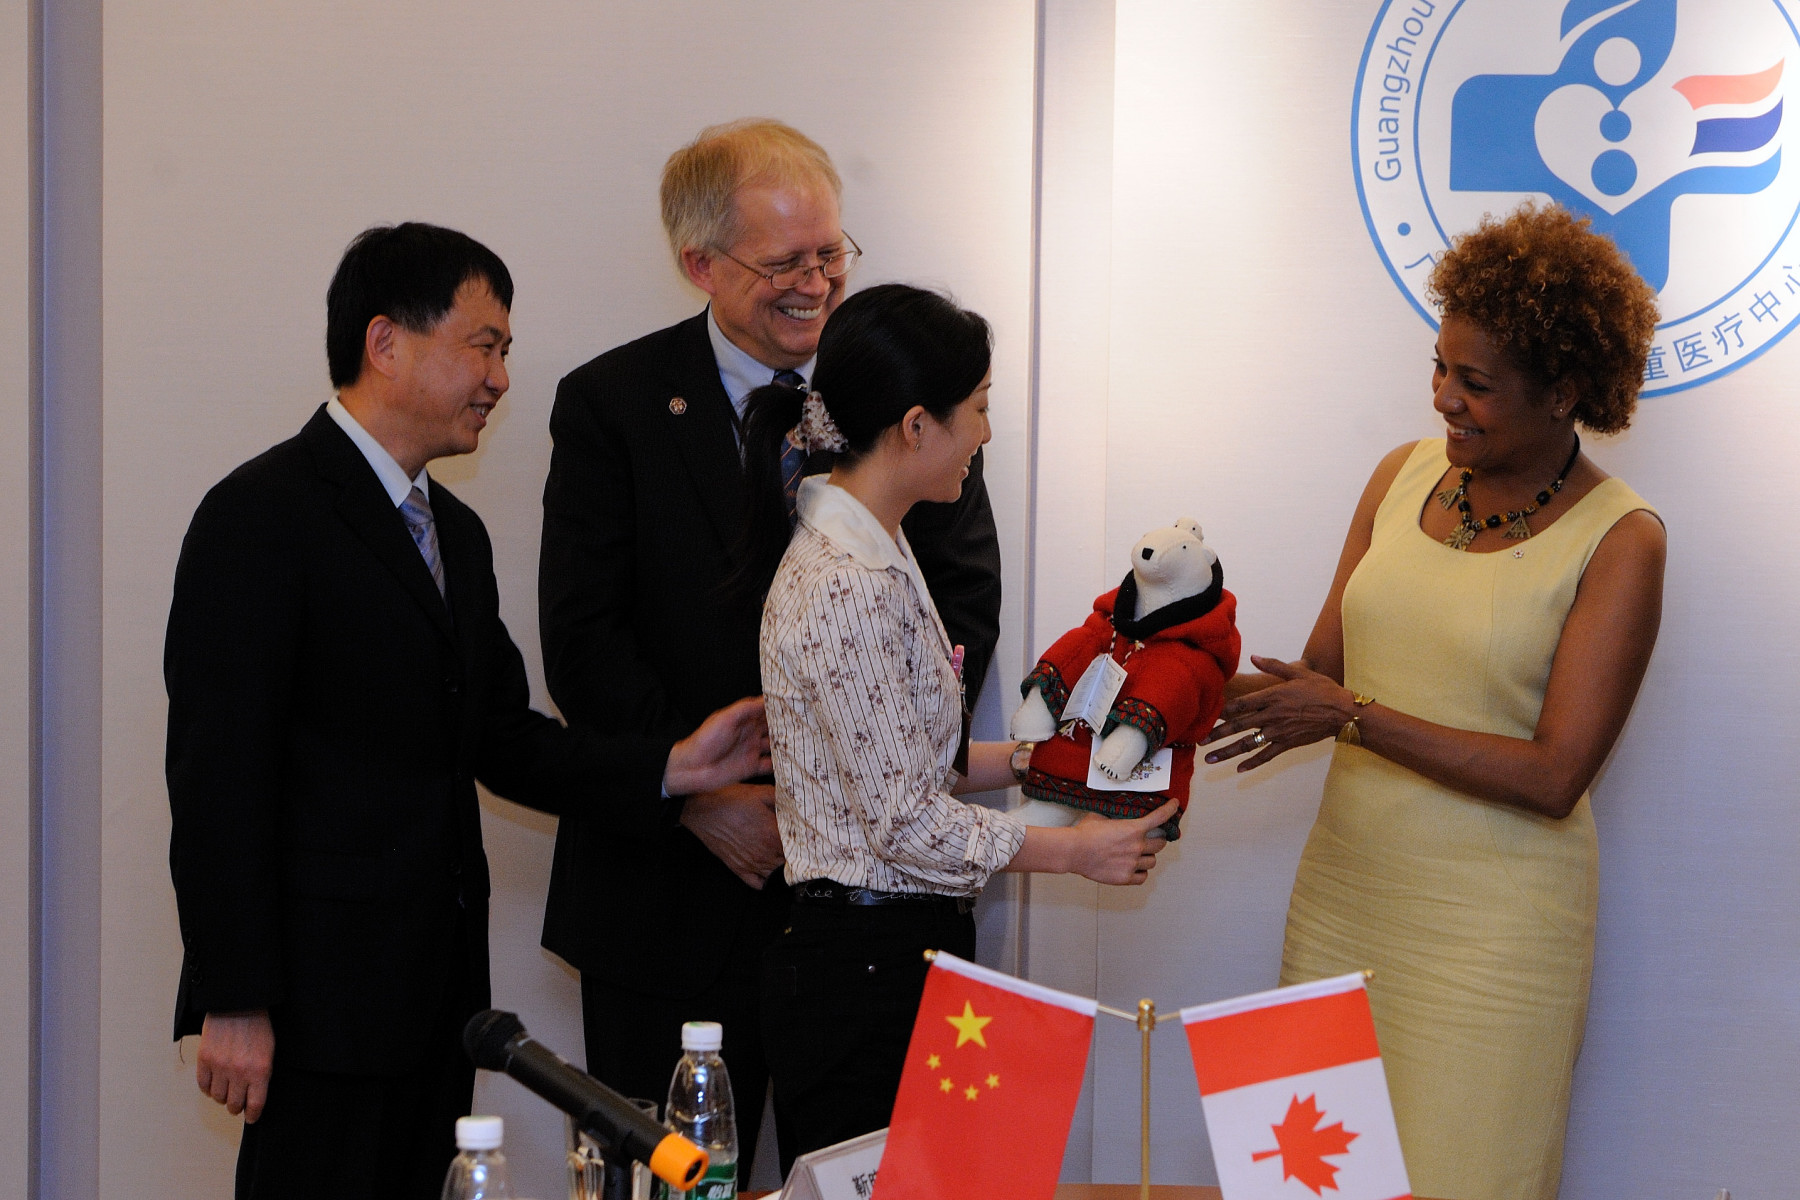 Representatives of the medical center received a souvenir from the Governor General before she left.